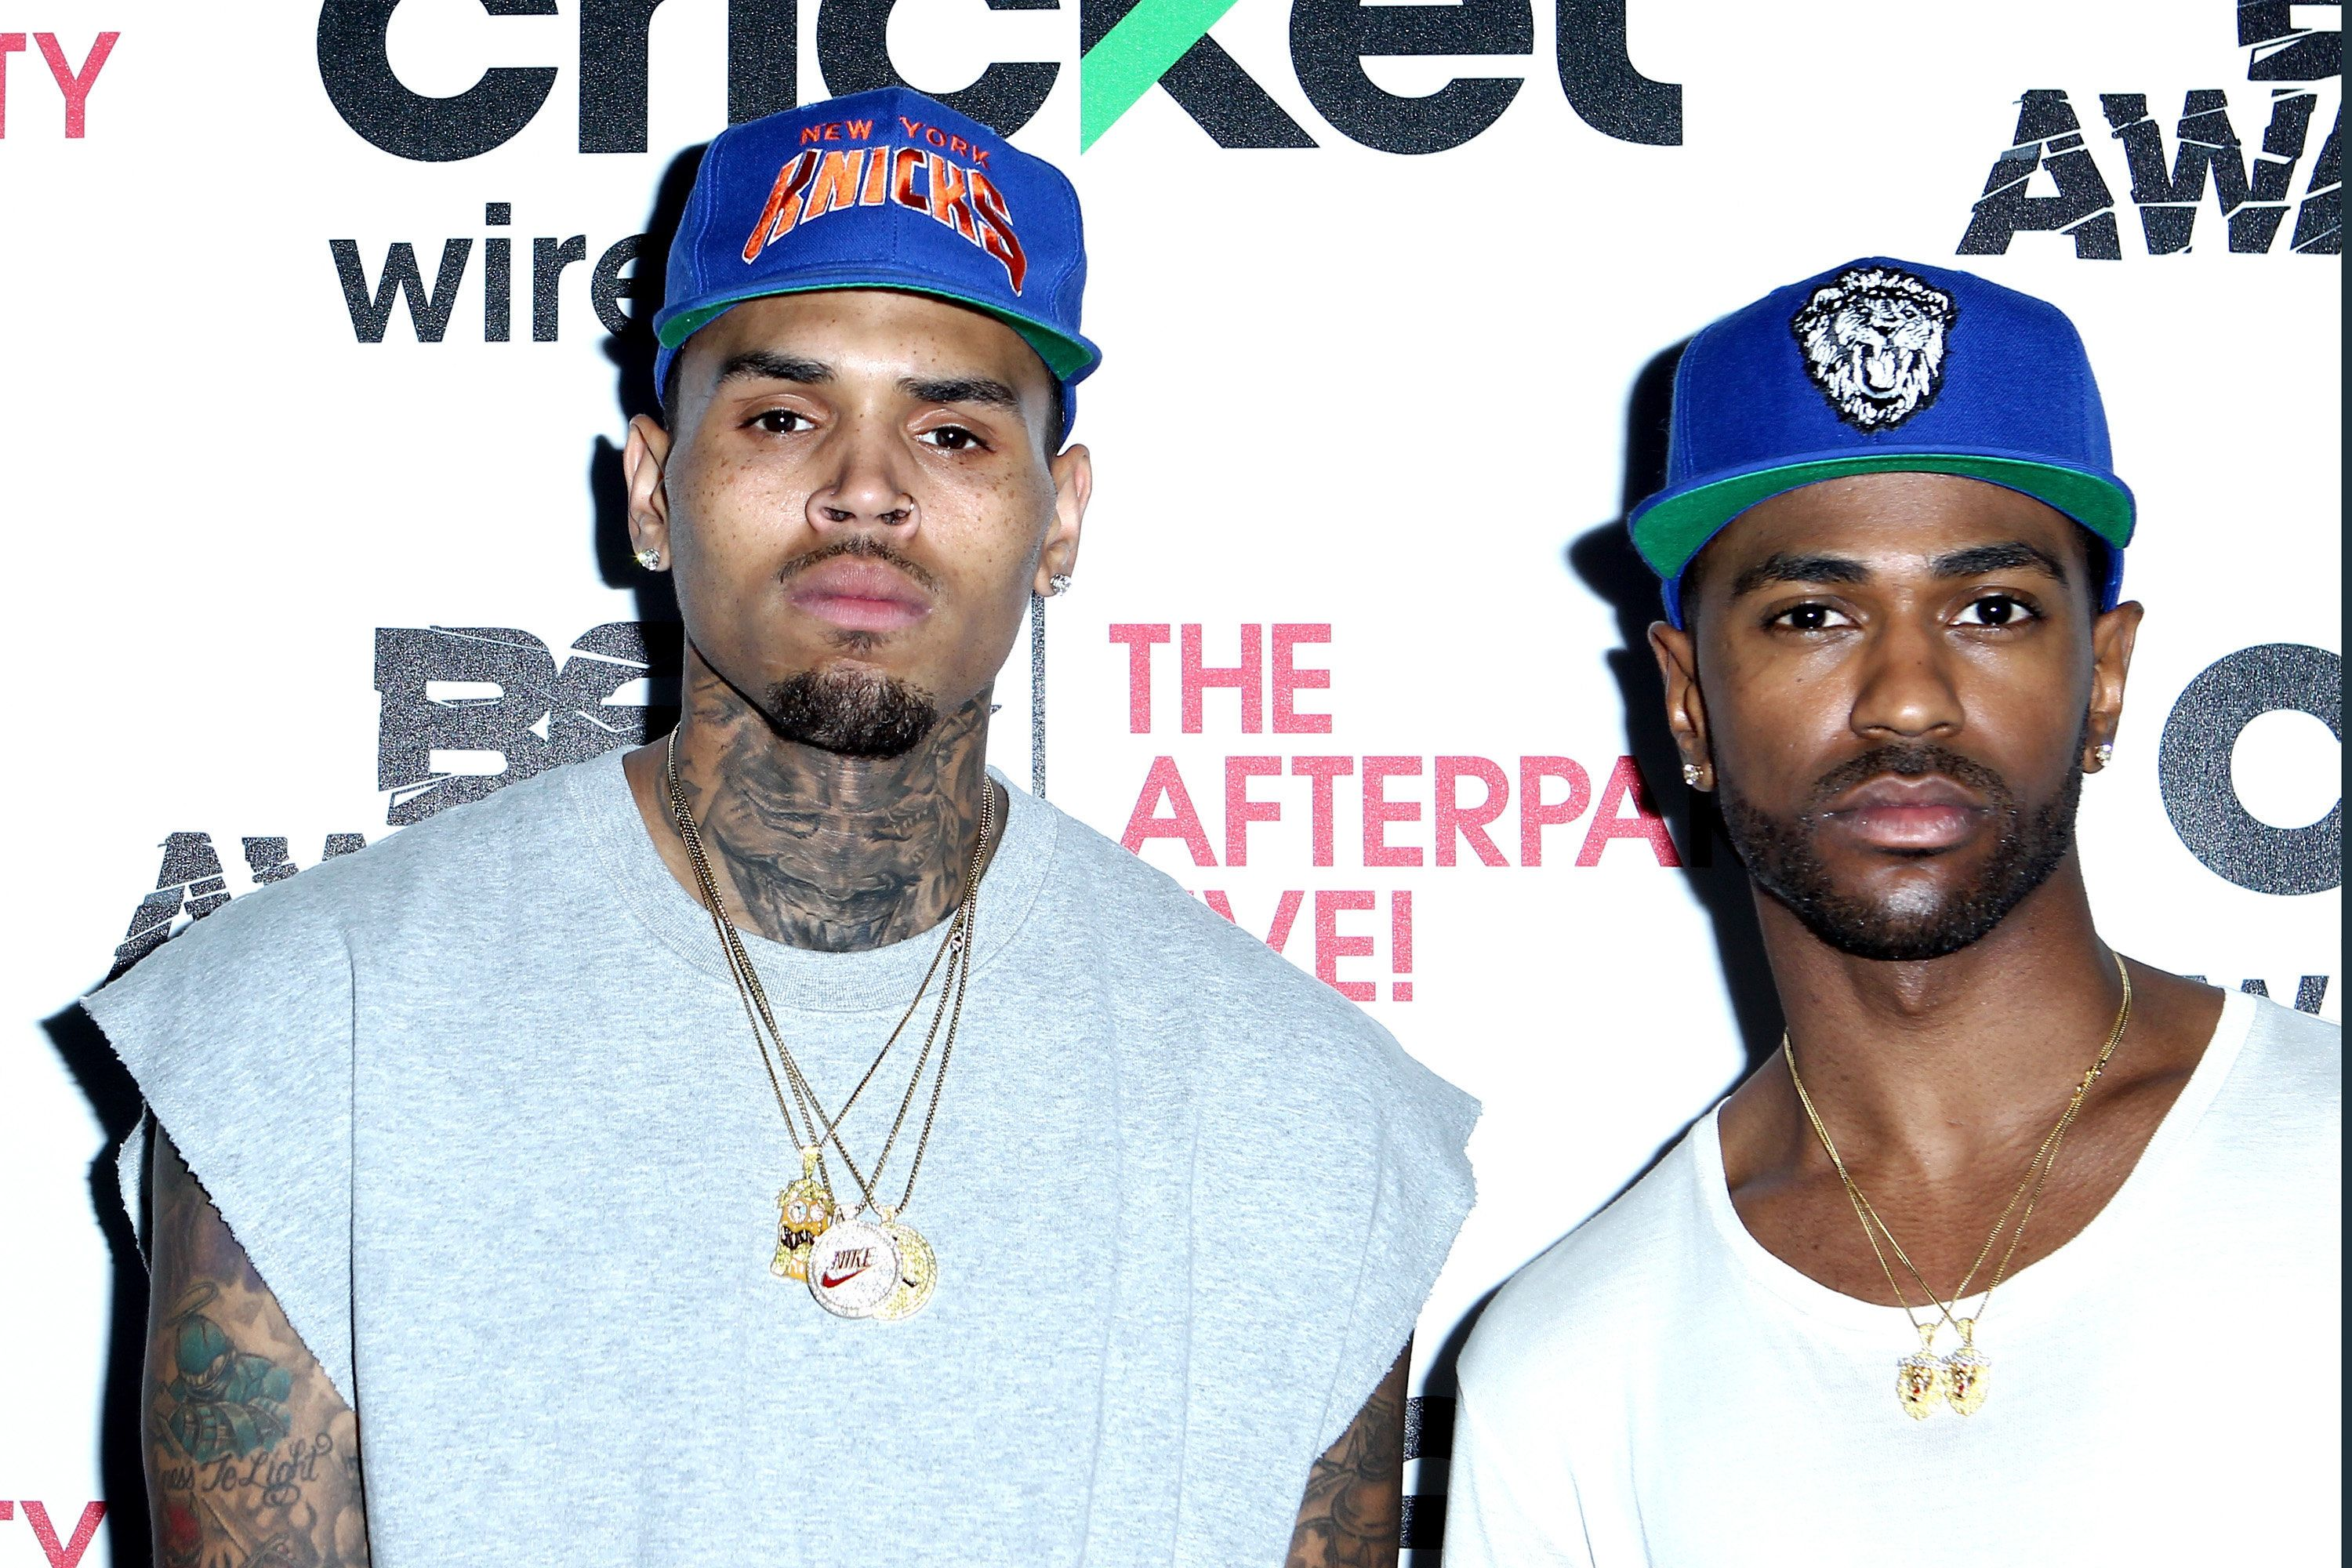 LOS ANGELES, CA - JUNE 28:  Singer Chris Brown (L) and rapper Big Sean attend the Cricket green lounge during the 2015 BET Awards at the Microsoft Theater on June 28, 2015 in Los Angeles, California.  (Photo by Leon Bennett/BET/Getty Images for BET)